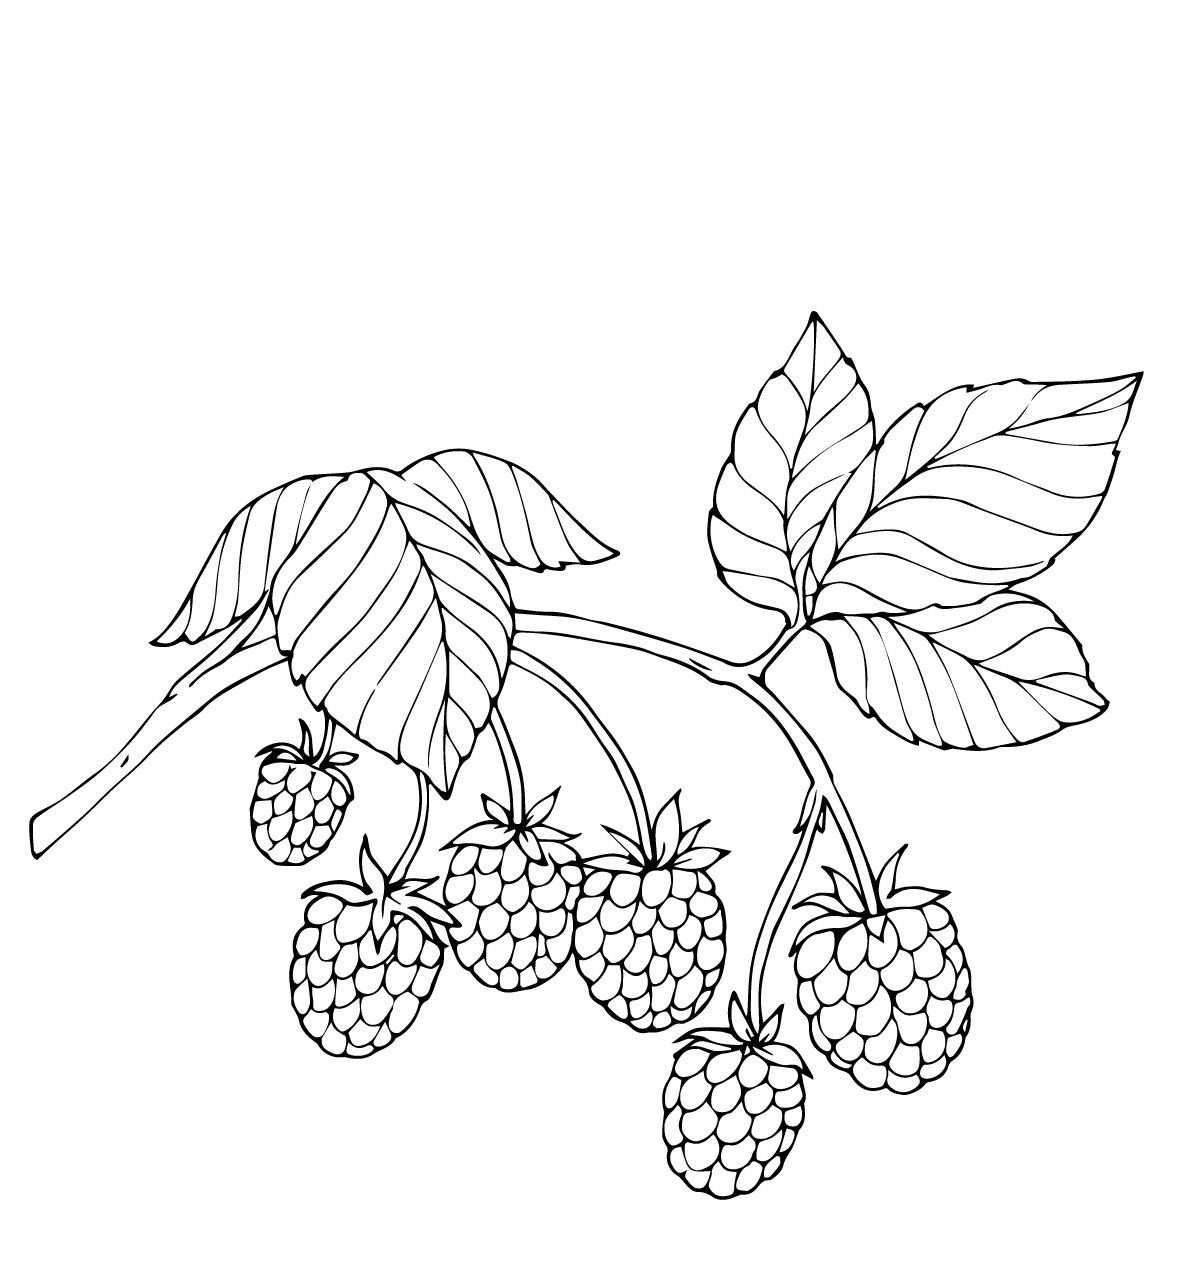 Berries coloring pages to download